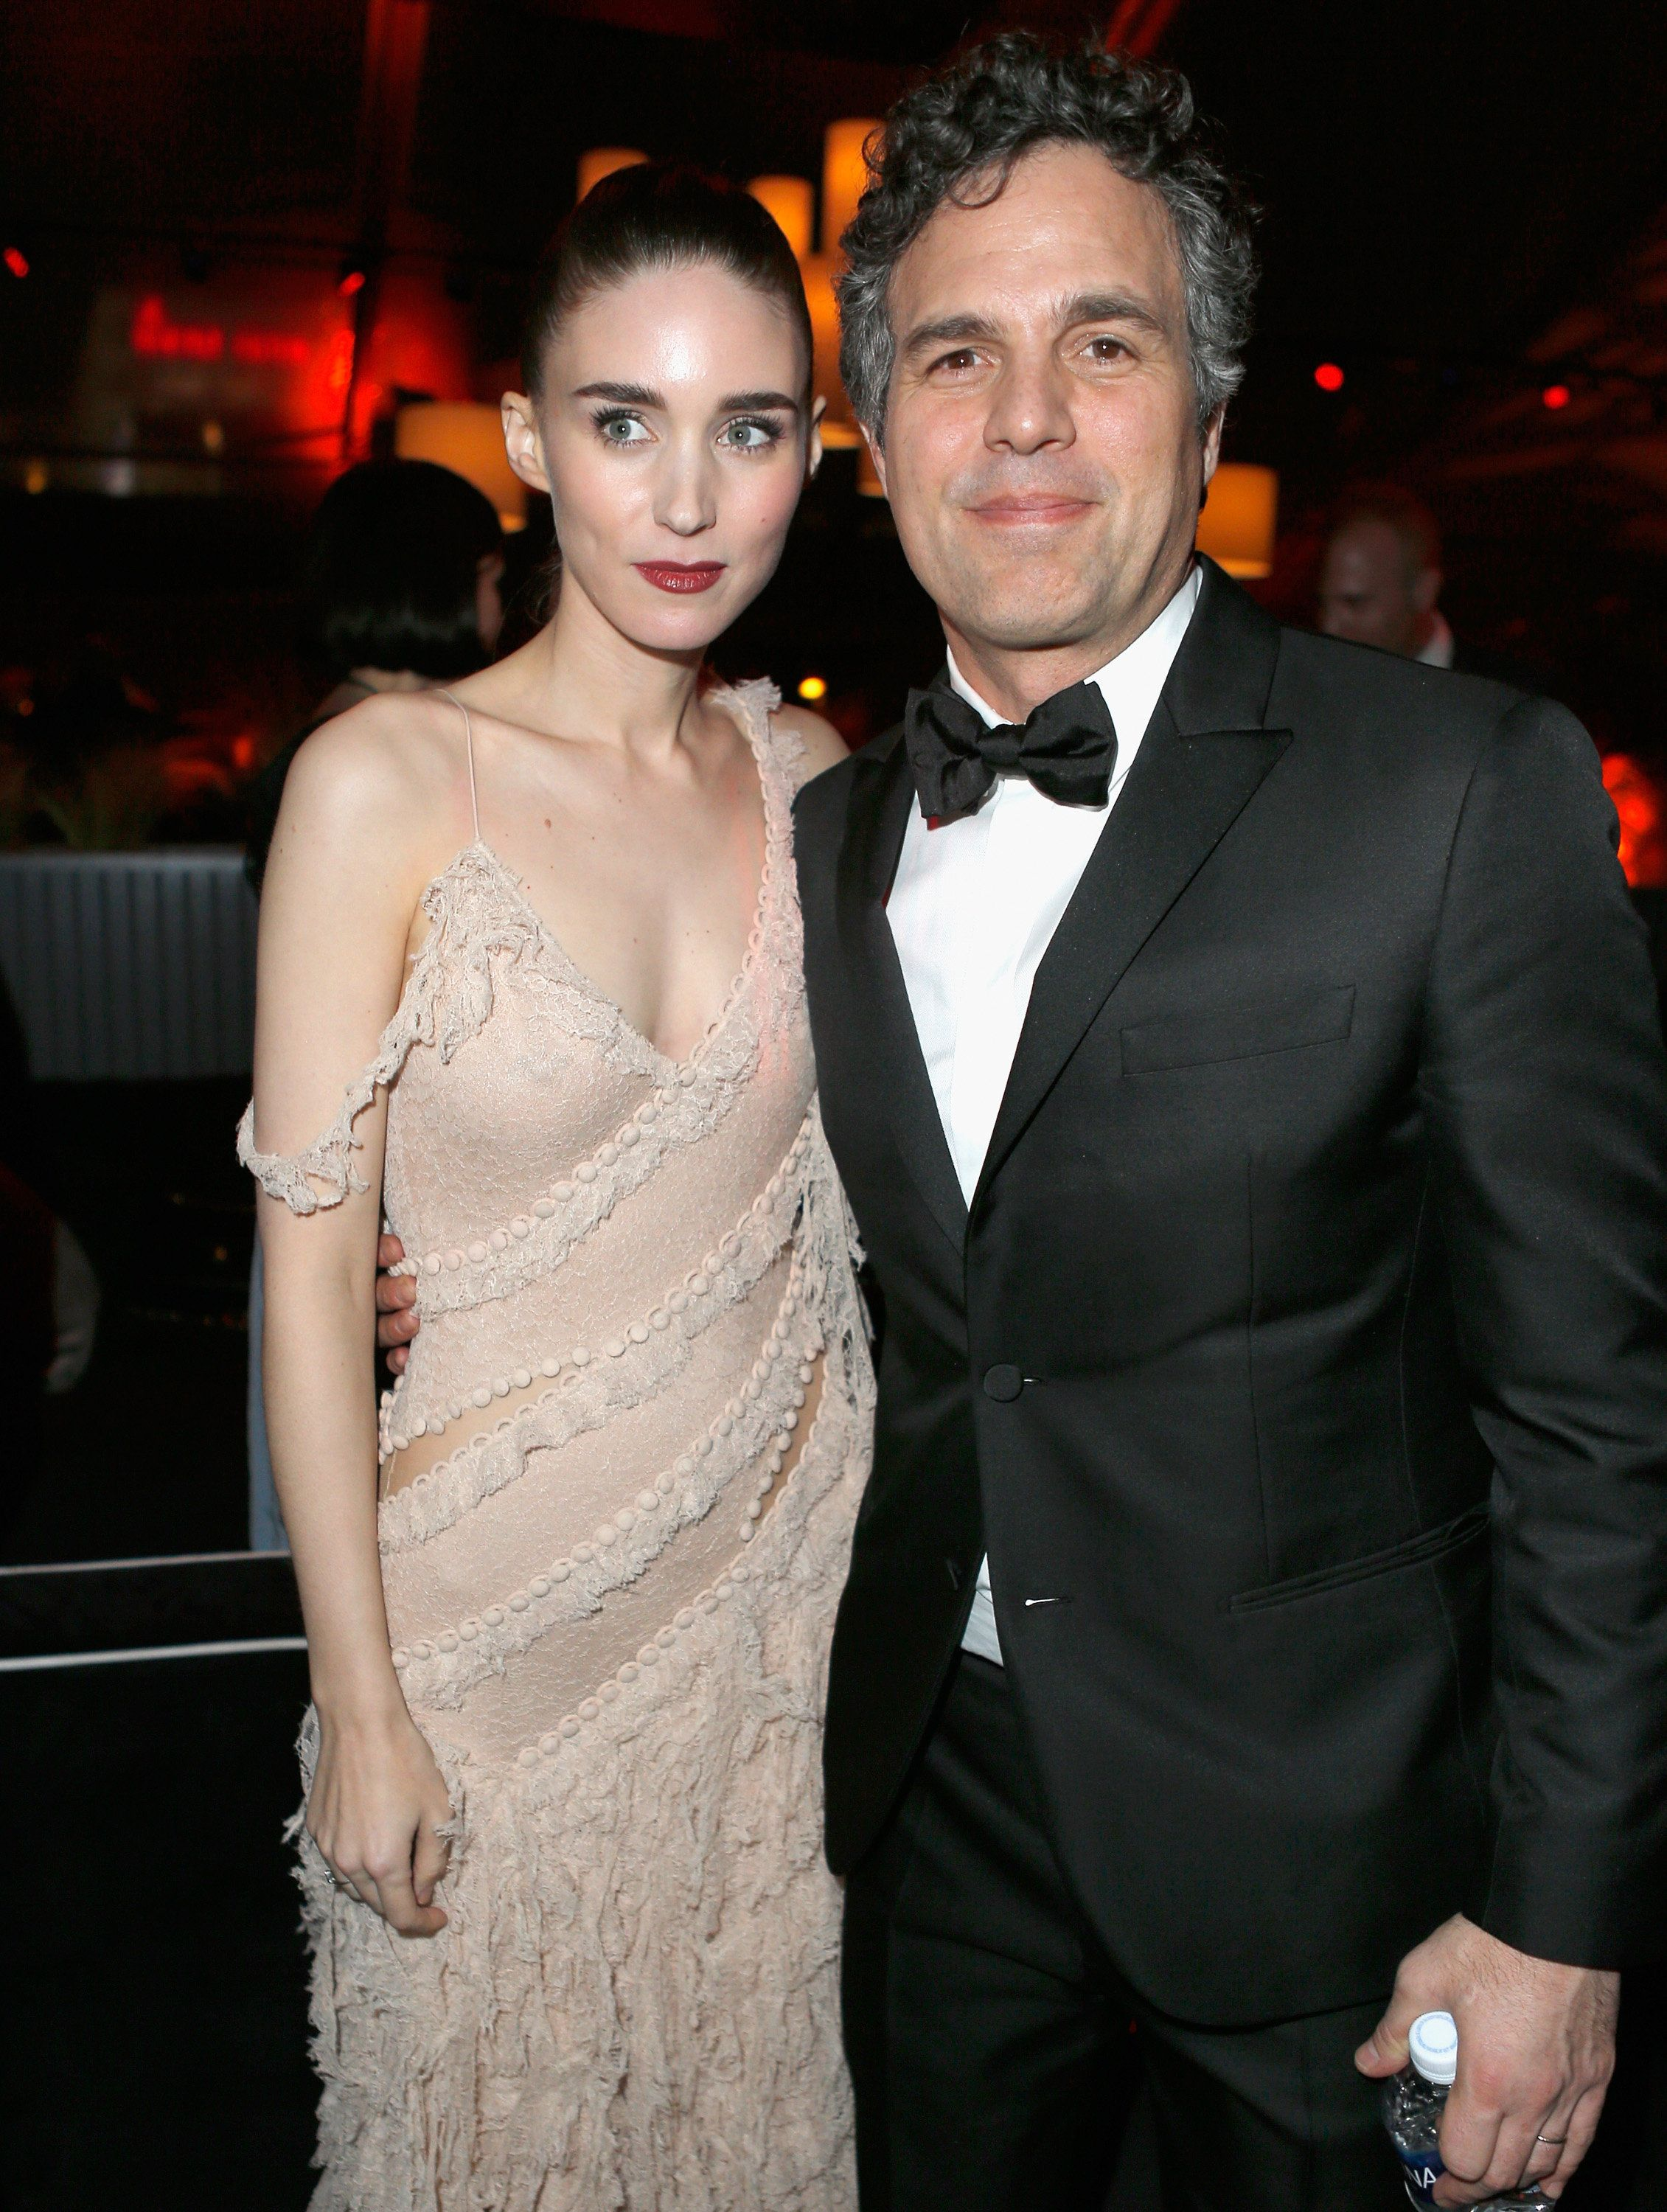 BEVERLY HILLS, CA - JANUARY 10:  Actress Rooney Mara (L) and actor Mark Ruffalo attend The Weinstein Company and Netflix Golden Globe Party, presented with DeLeon Tequila, Laura Mercier, Lindt Chocolate, Marie Claire and Hearts On Fire at The Beverly Hilton Hotel on January 10, 2016 in Beverly Hills, California.  (Photo by Jeff Vespa/Getty Images for The Weinstein Company)